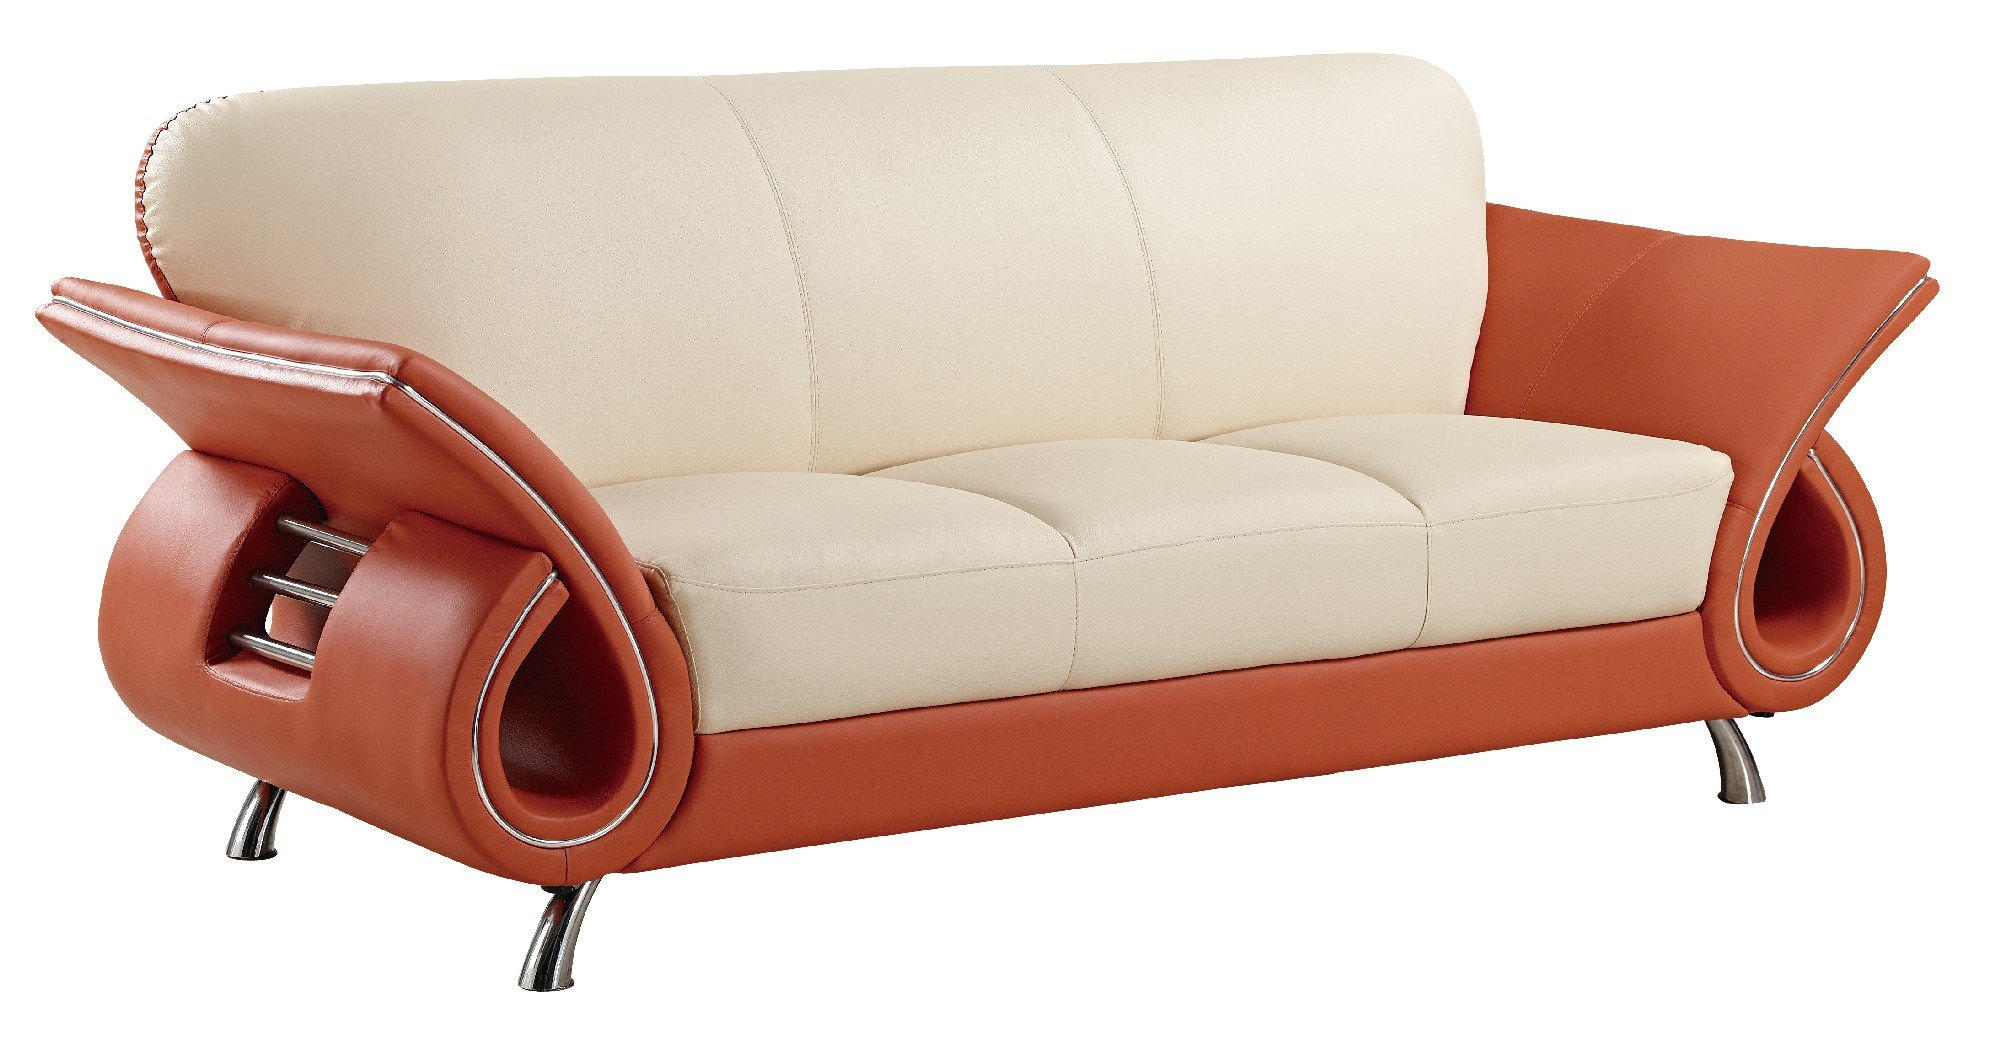 u559 beige orange leather sofa by global furniture. Black Bedroom Furniture Sets. Home Design Ideas